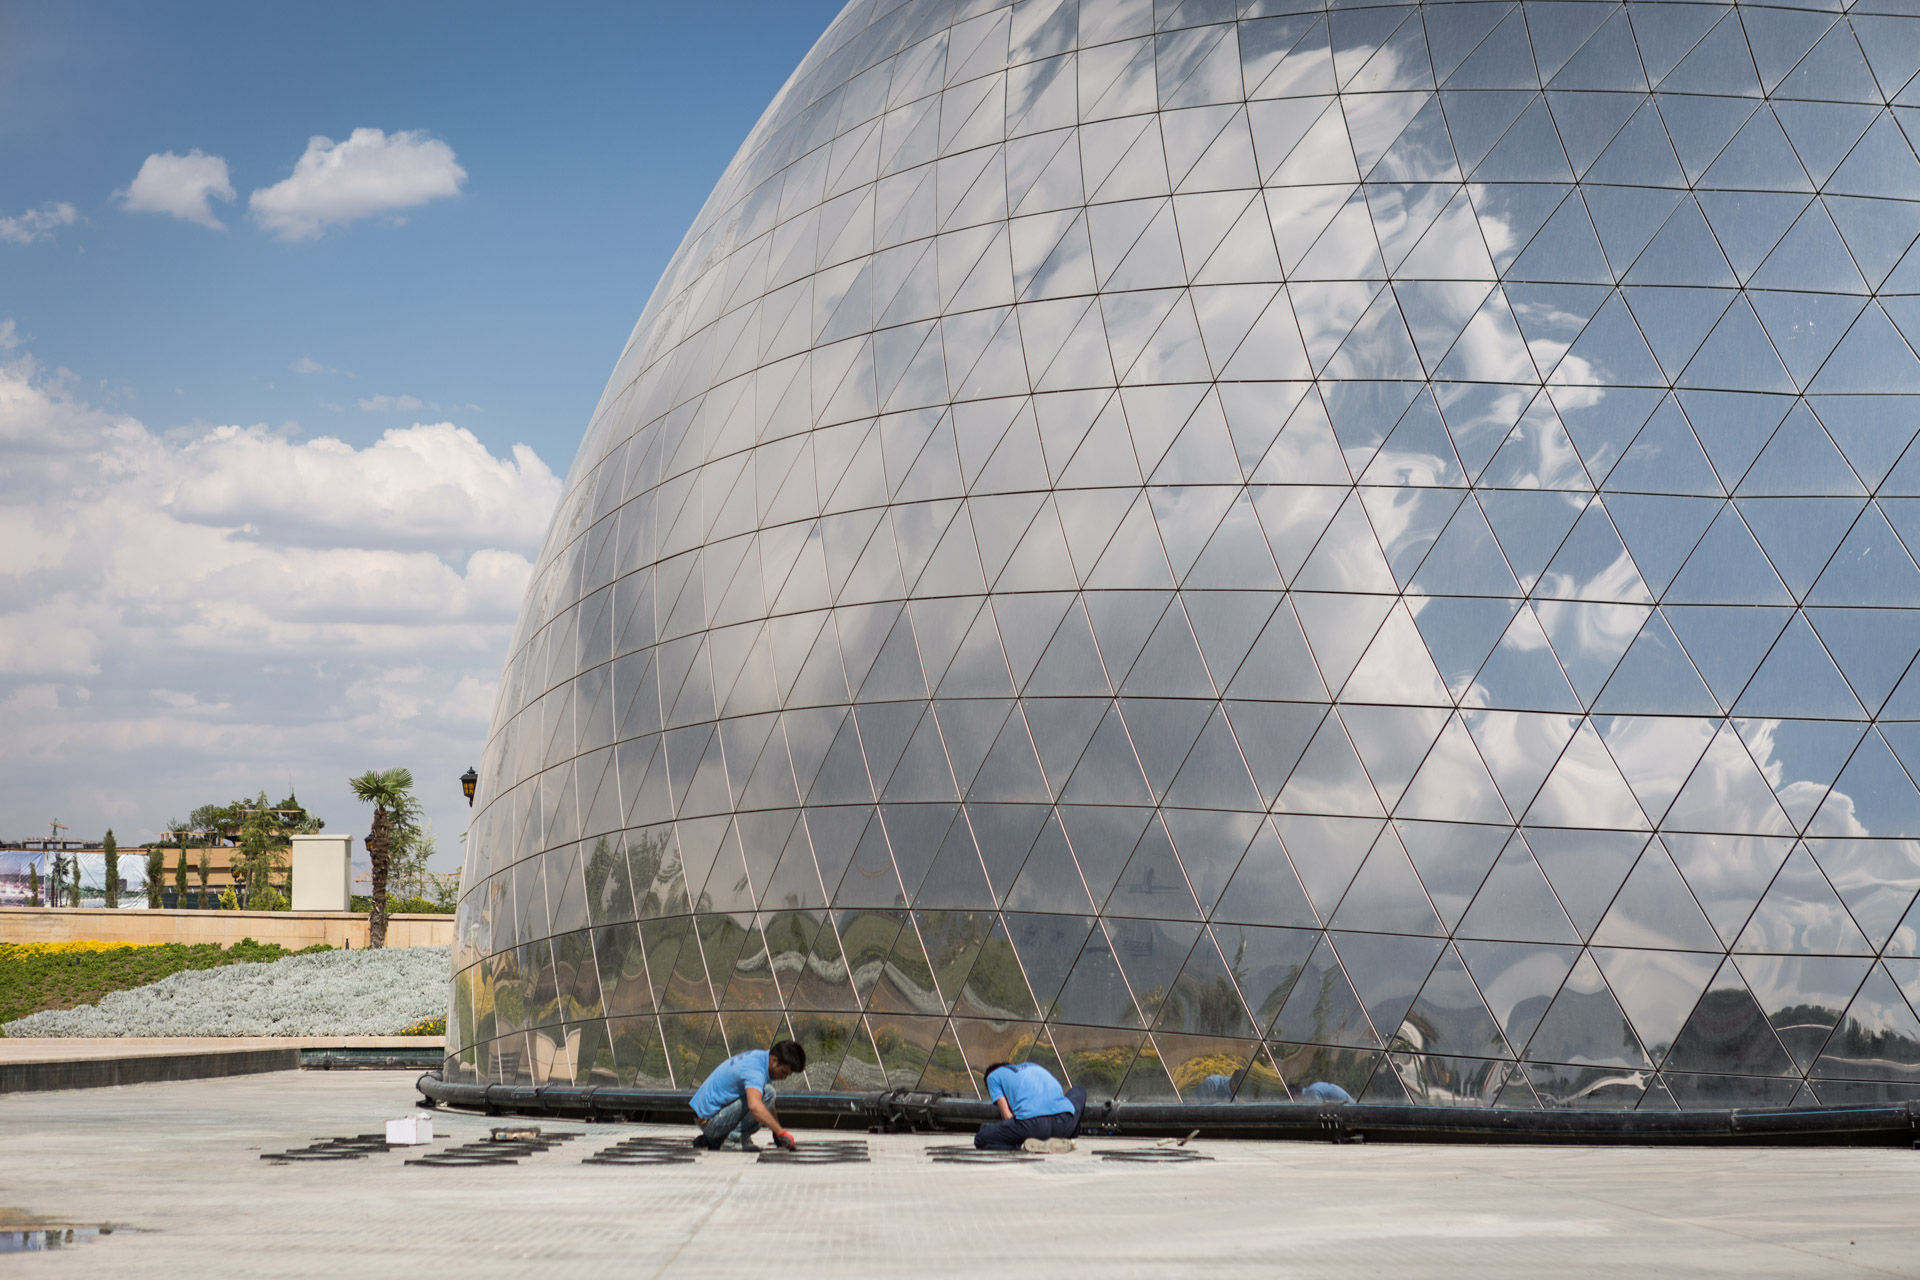 Two workers set their finishing touches to the dome which will feature a 360 degree panorama view of the destroyed city of Khorramshahr.